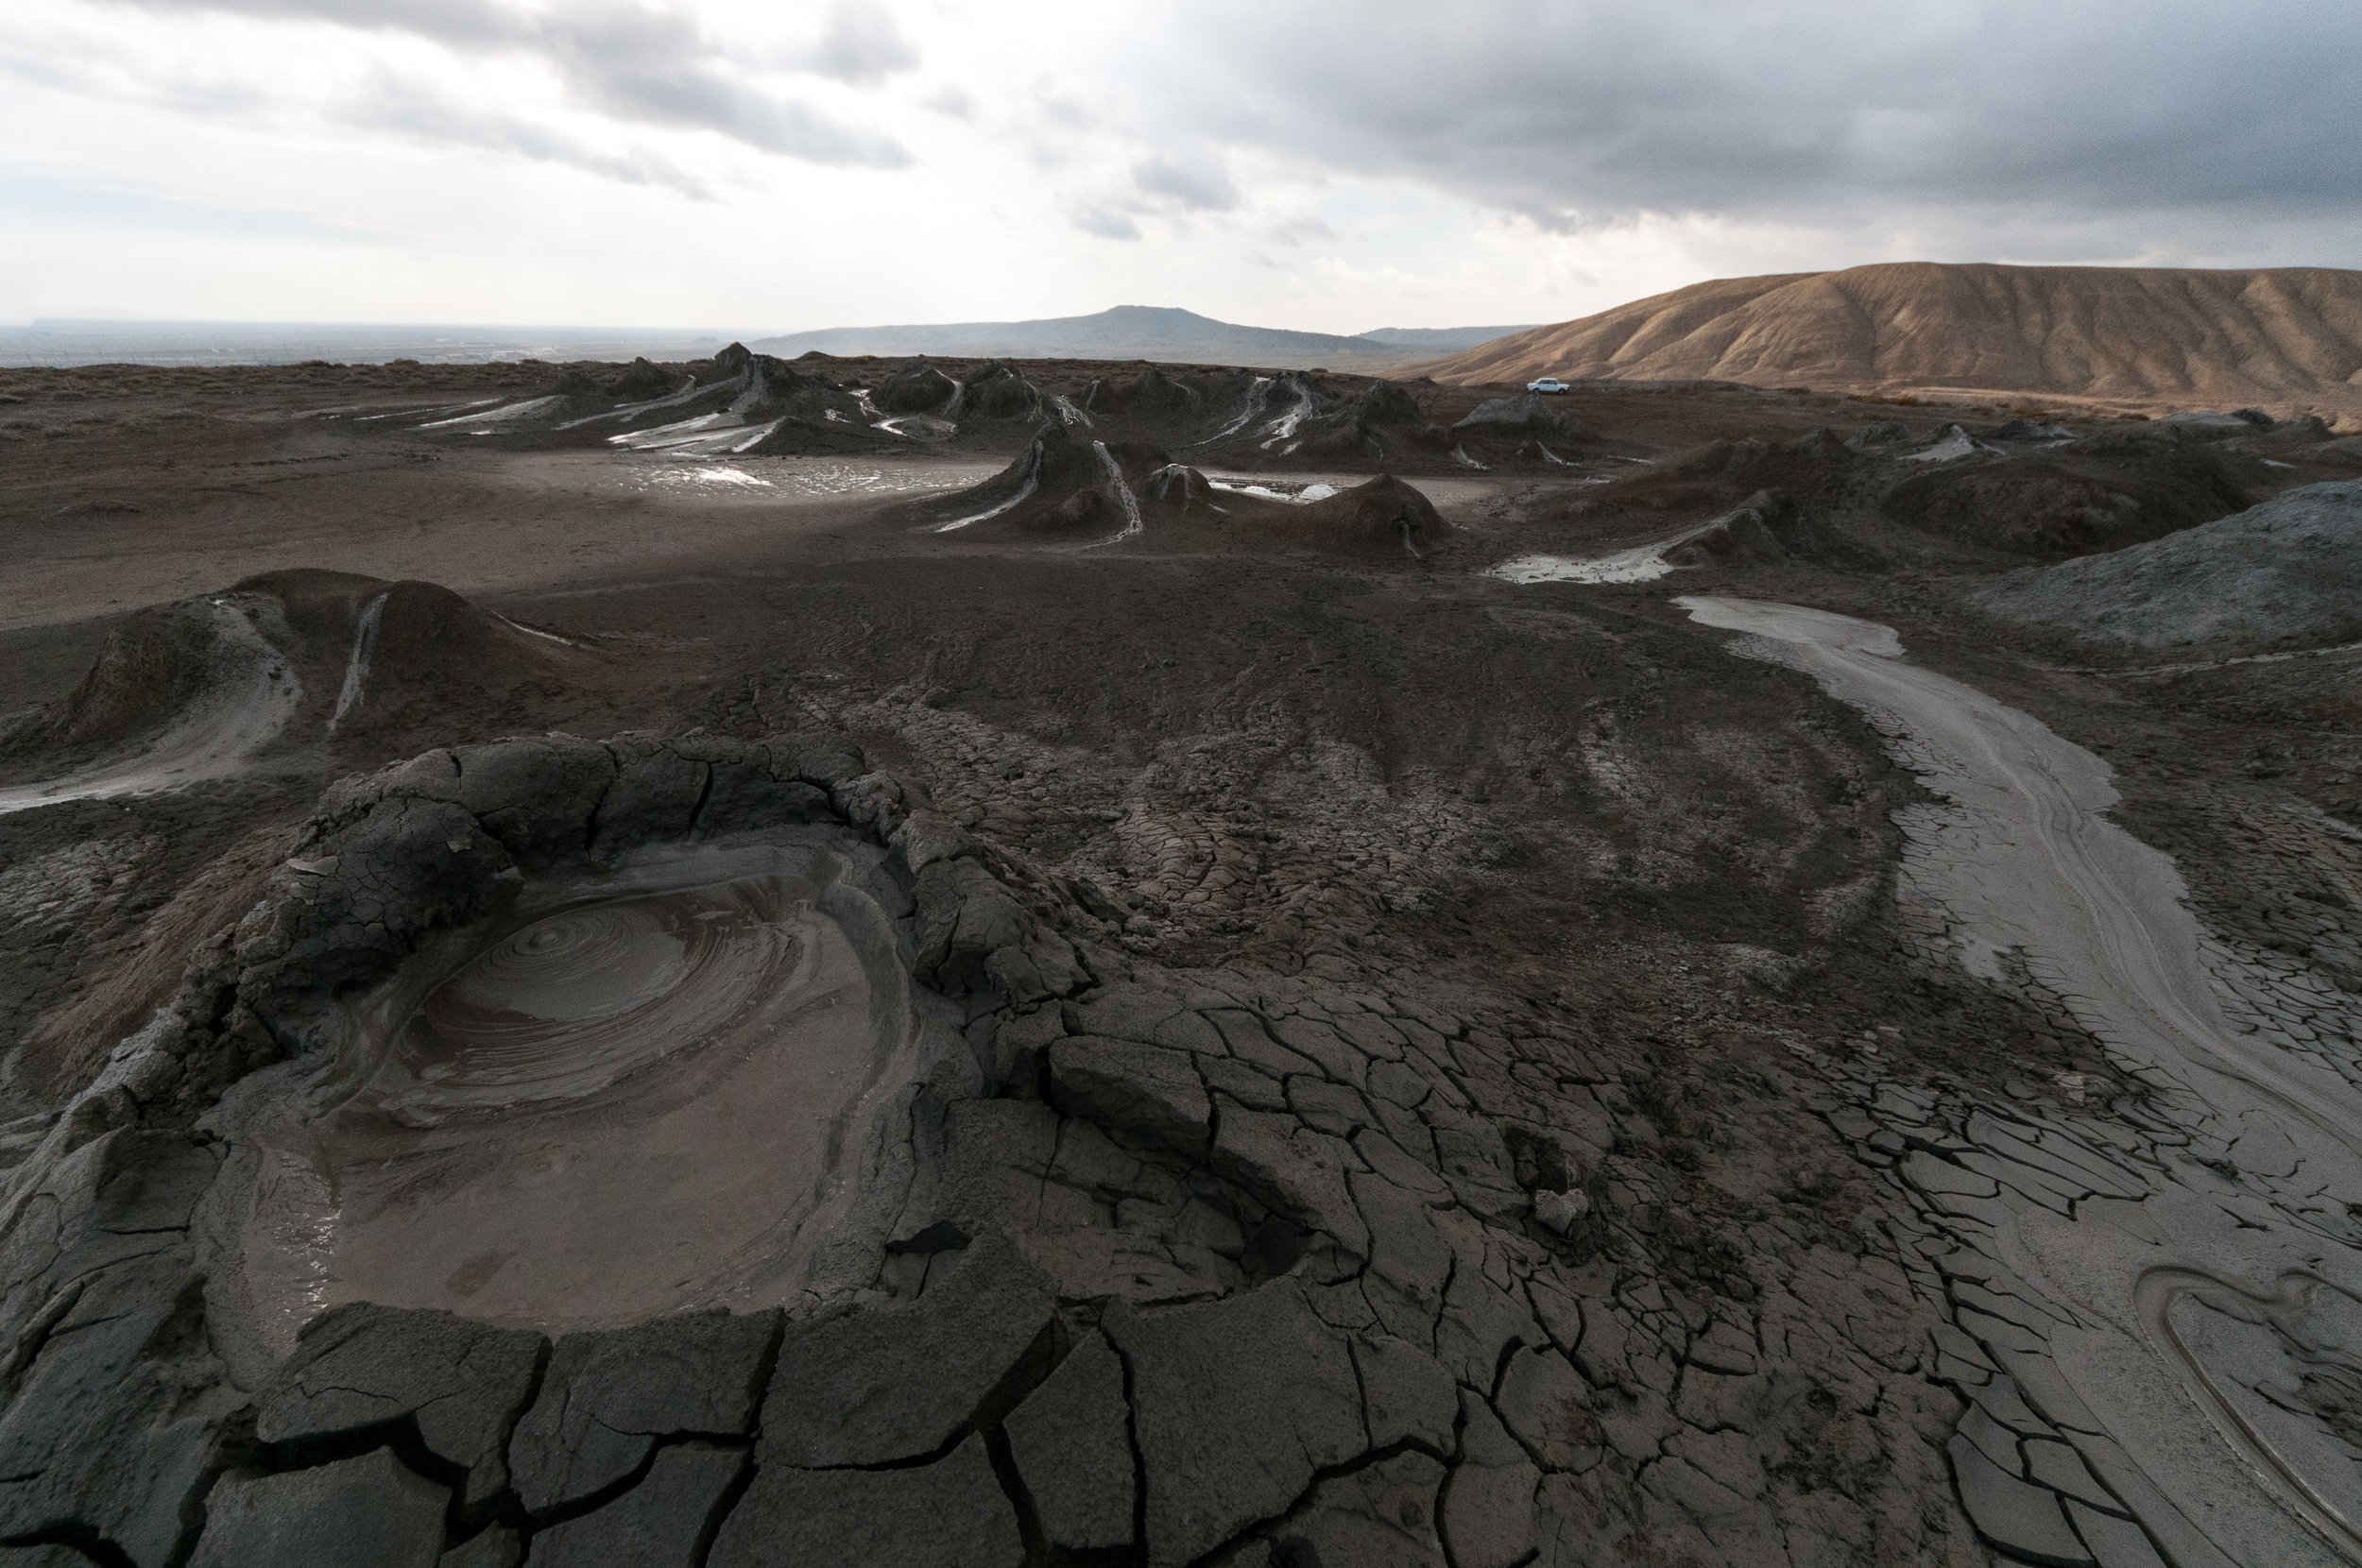 Dramatic landscape, created by the mud